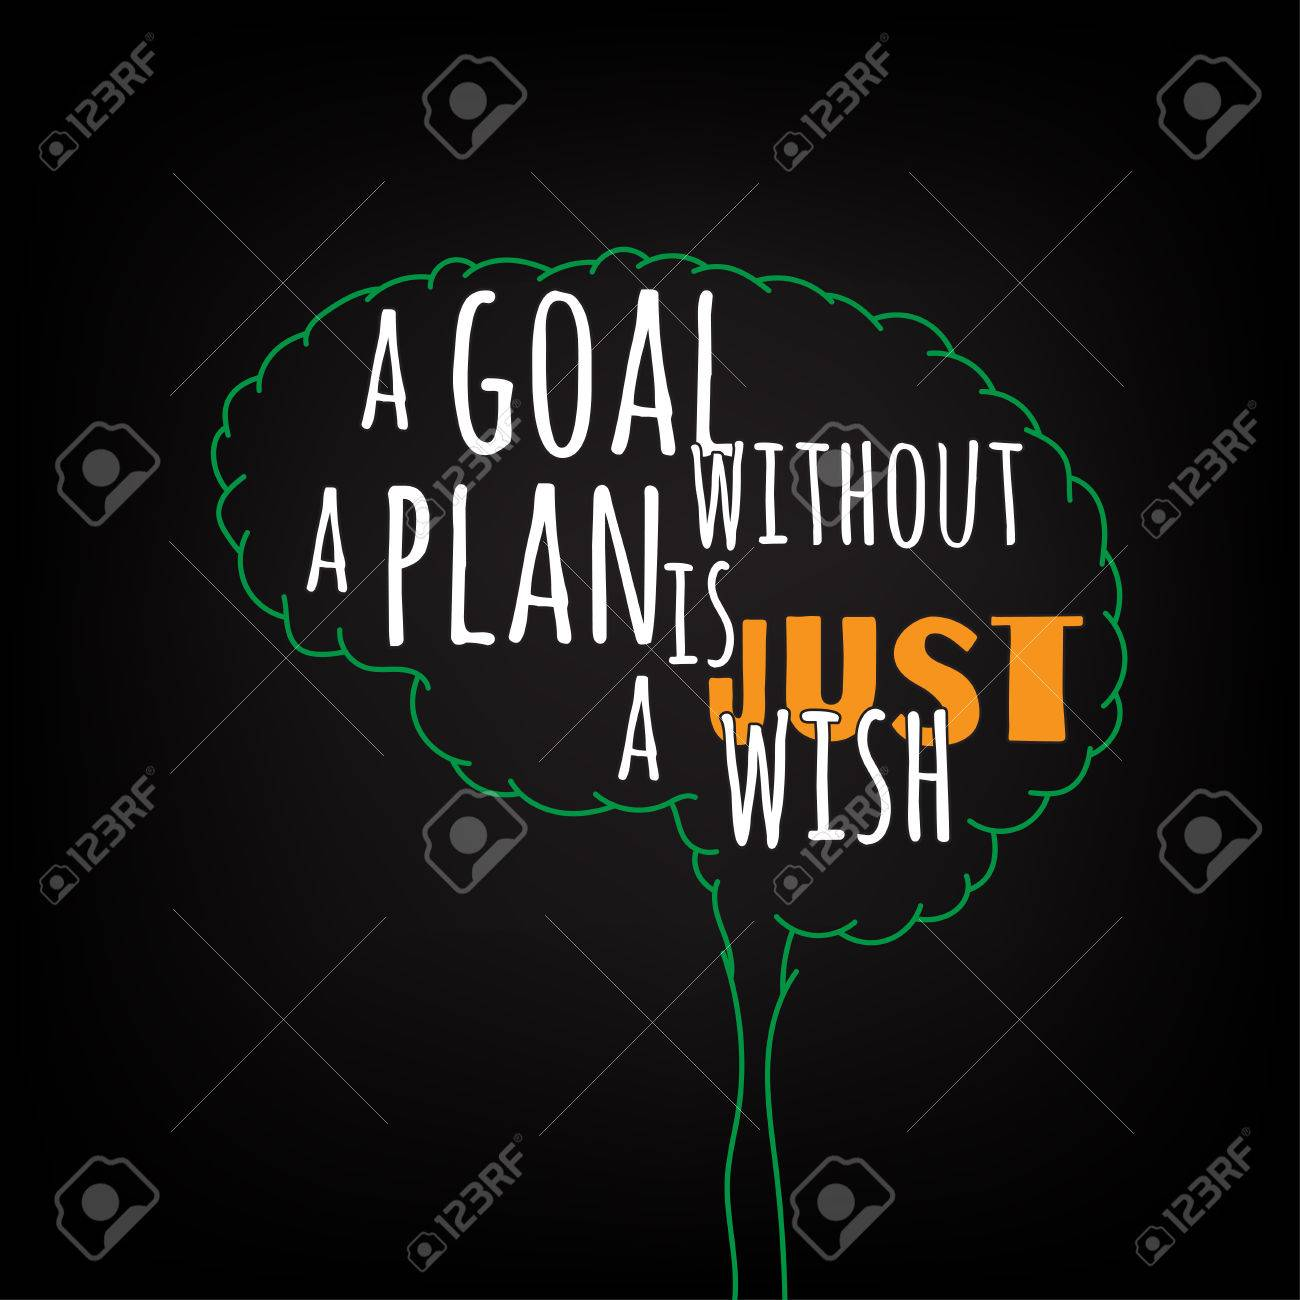 a goal without a plan is just a wish motivation clever ideas in the brain poster